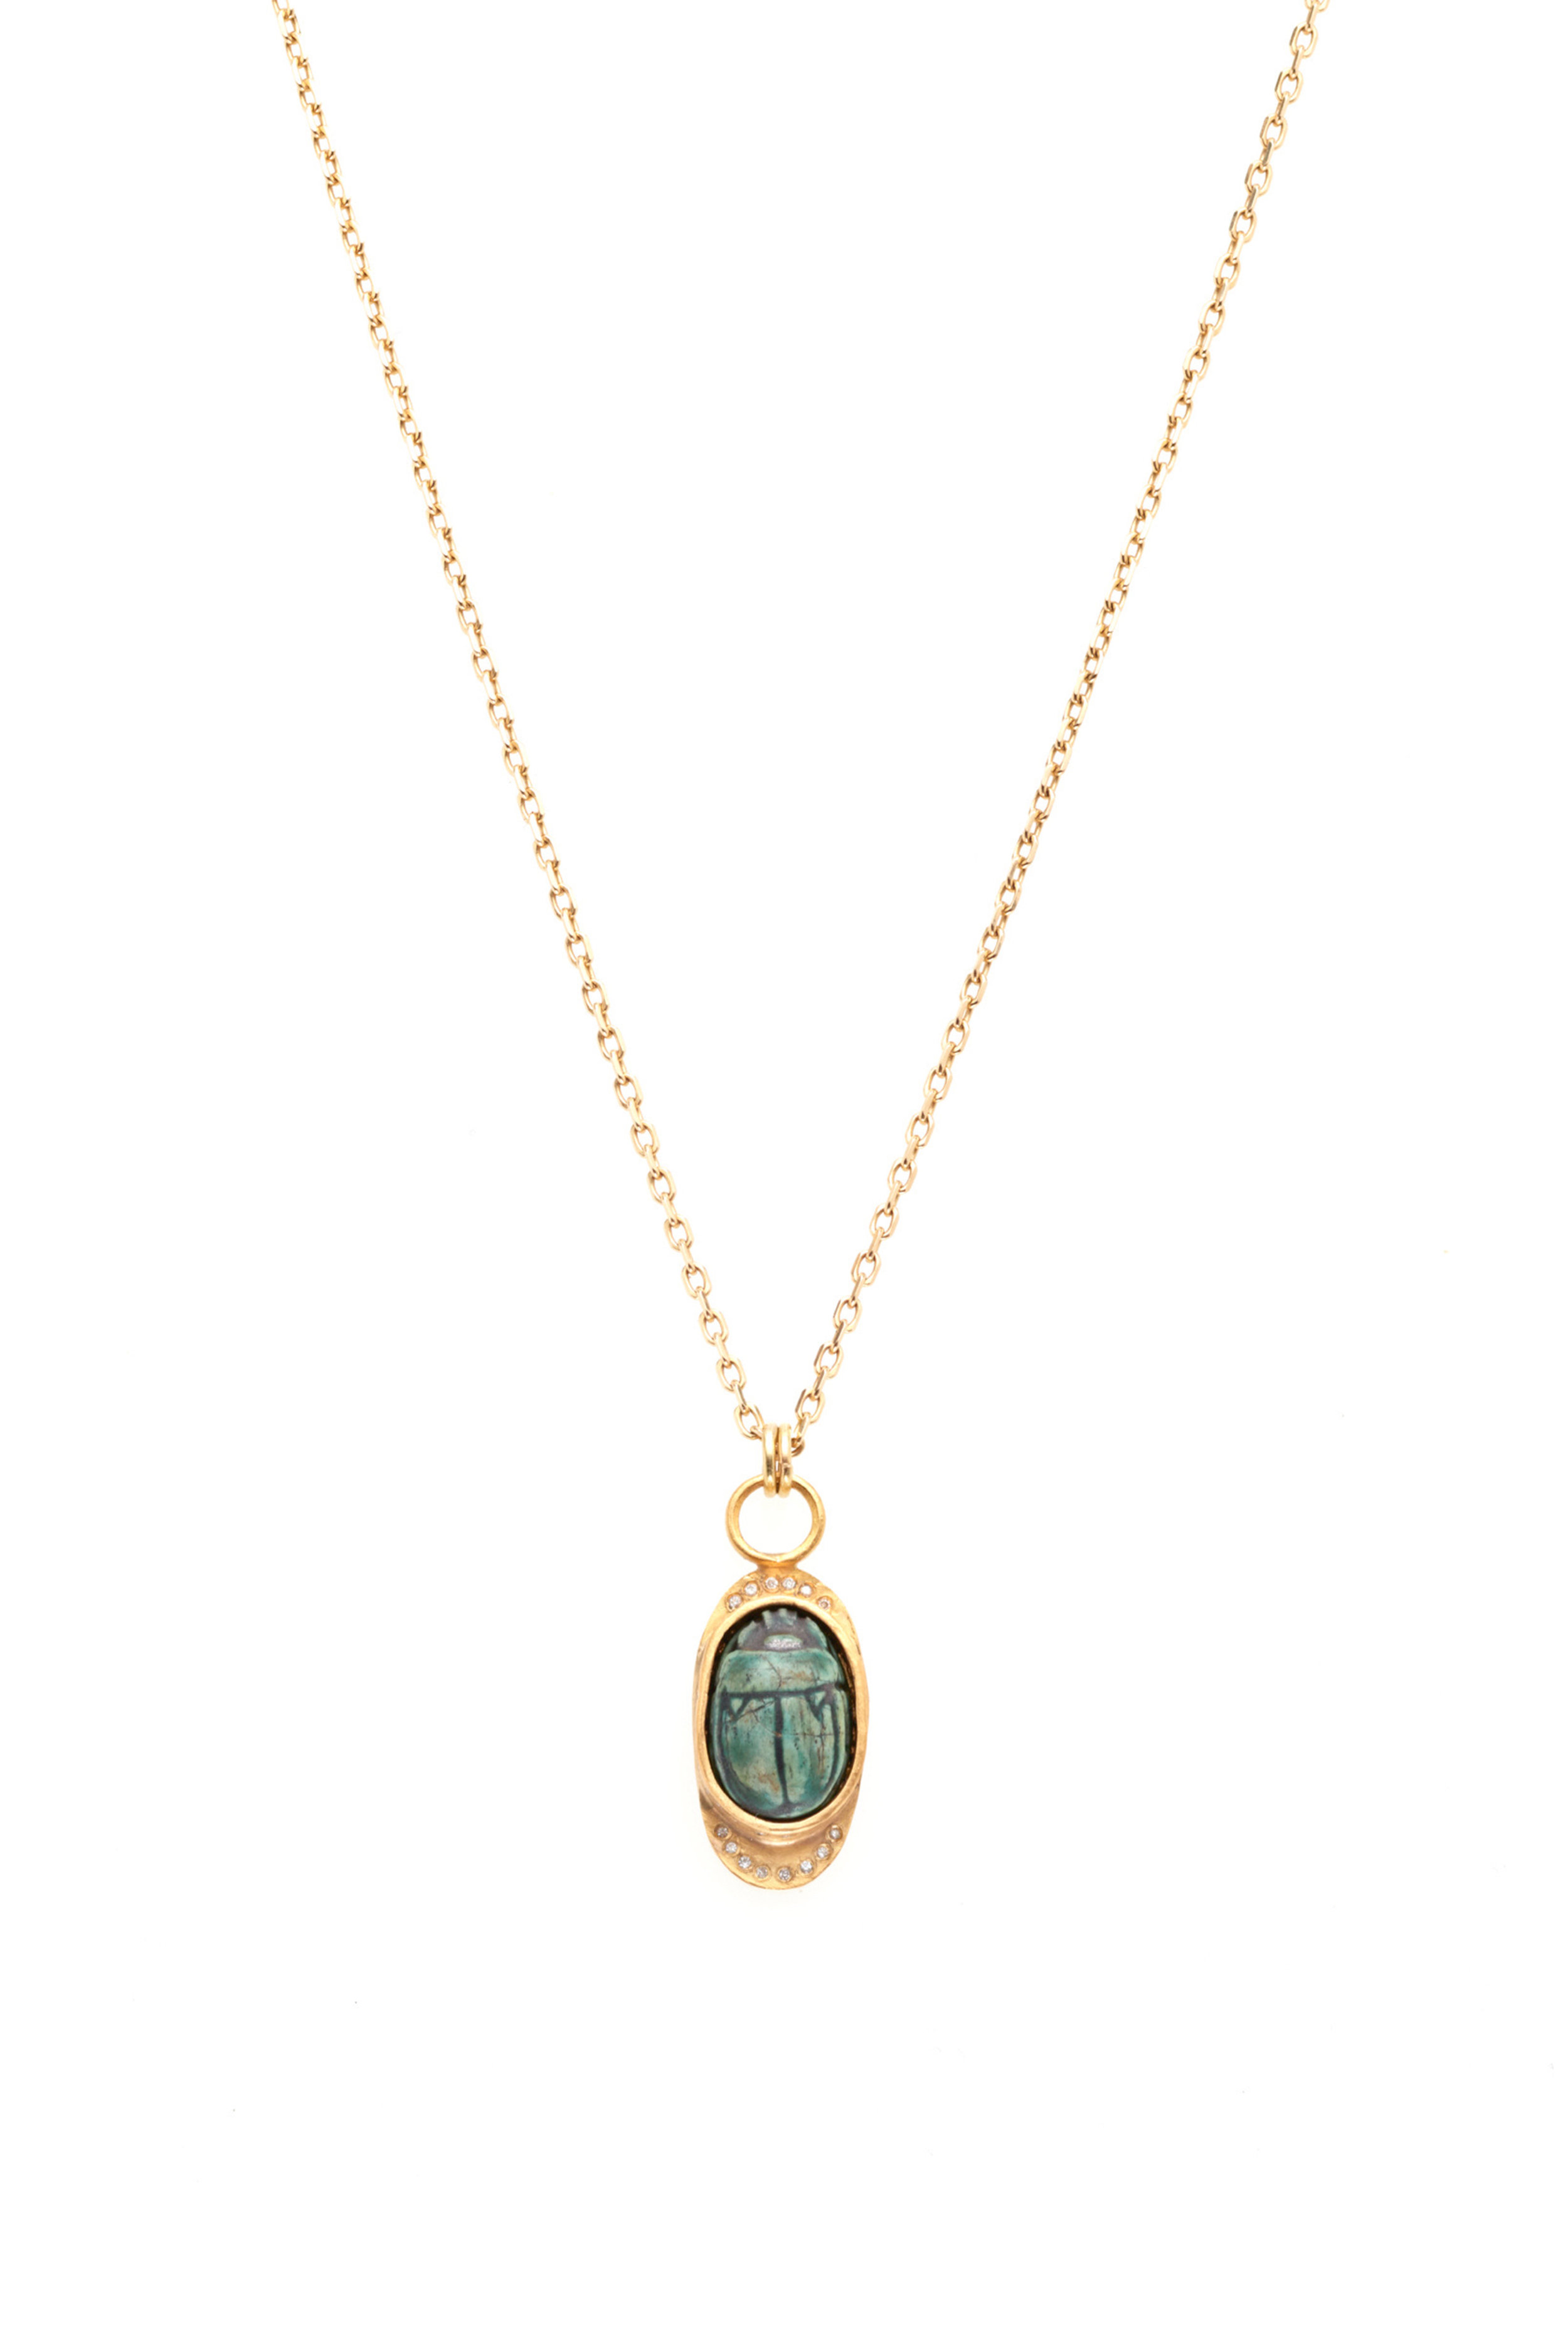 22K gold with an ancient scarab beetle and diamonds -